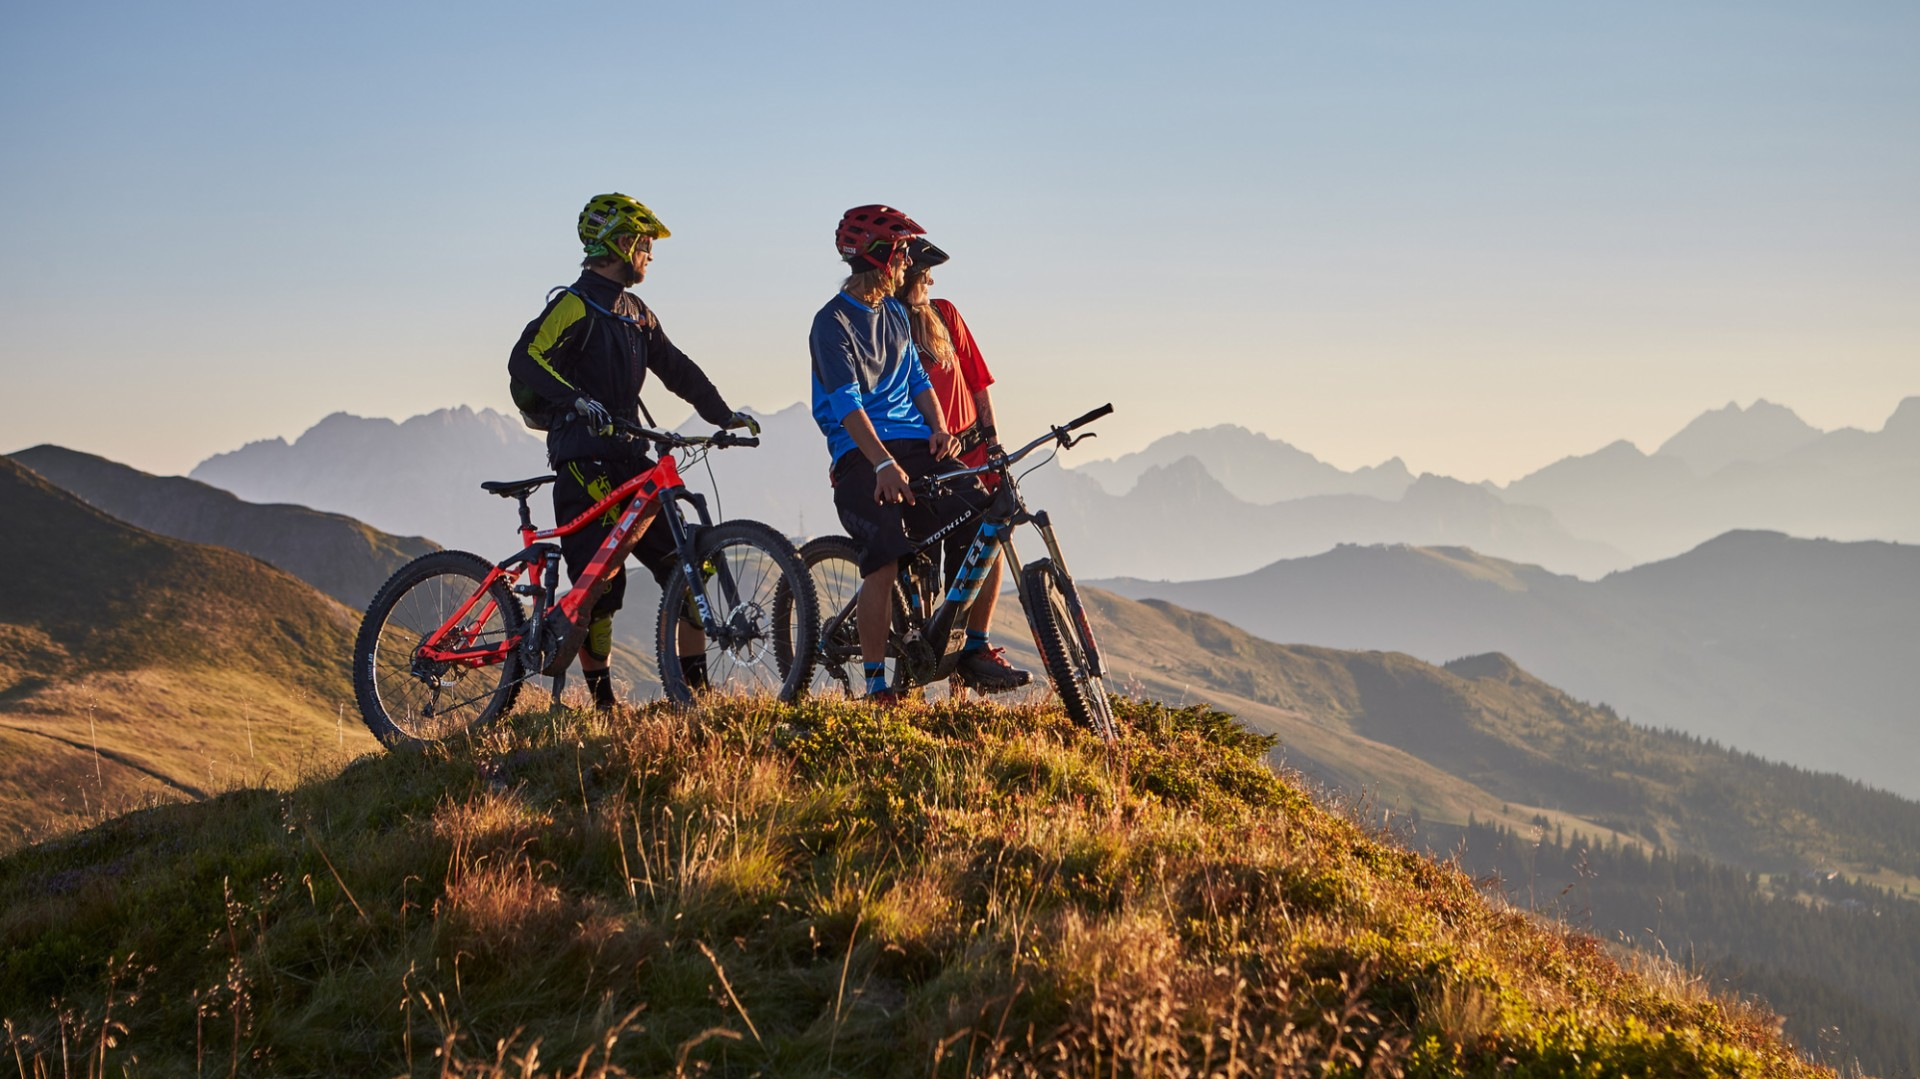 Bike-action in Saalbach-Hinterglemm